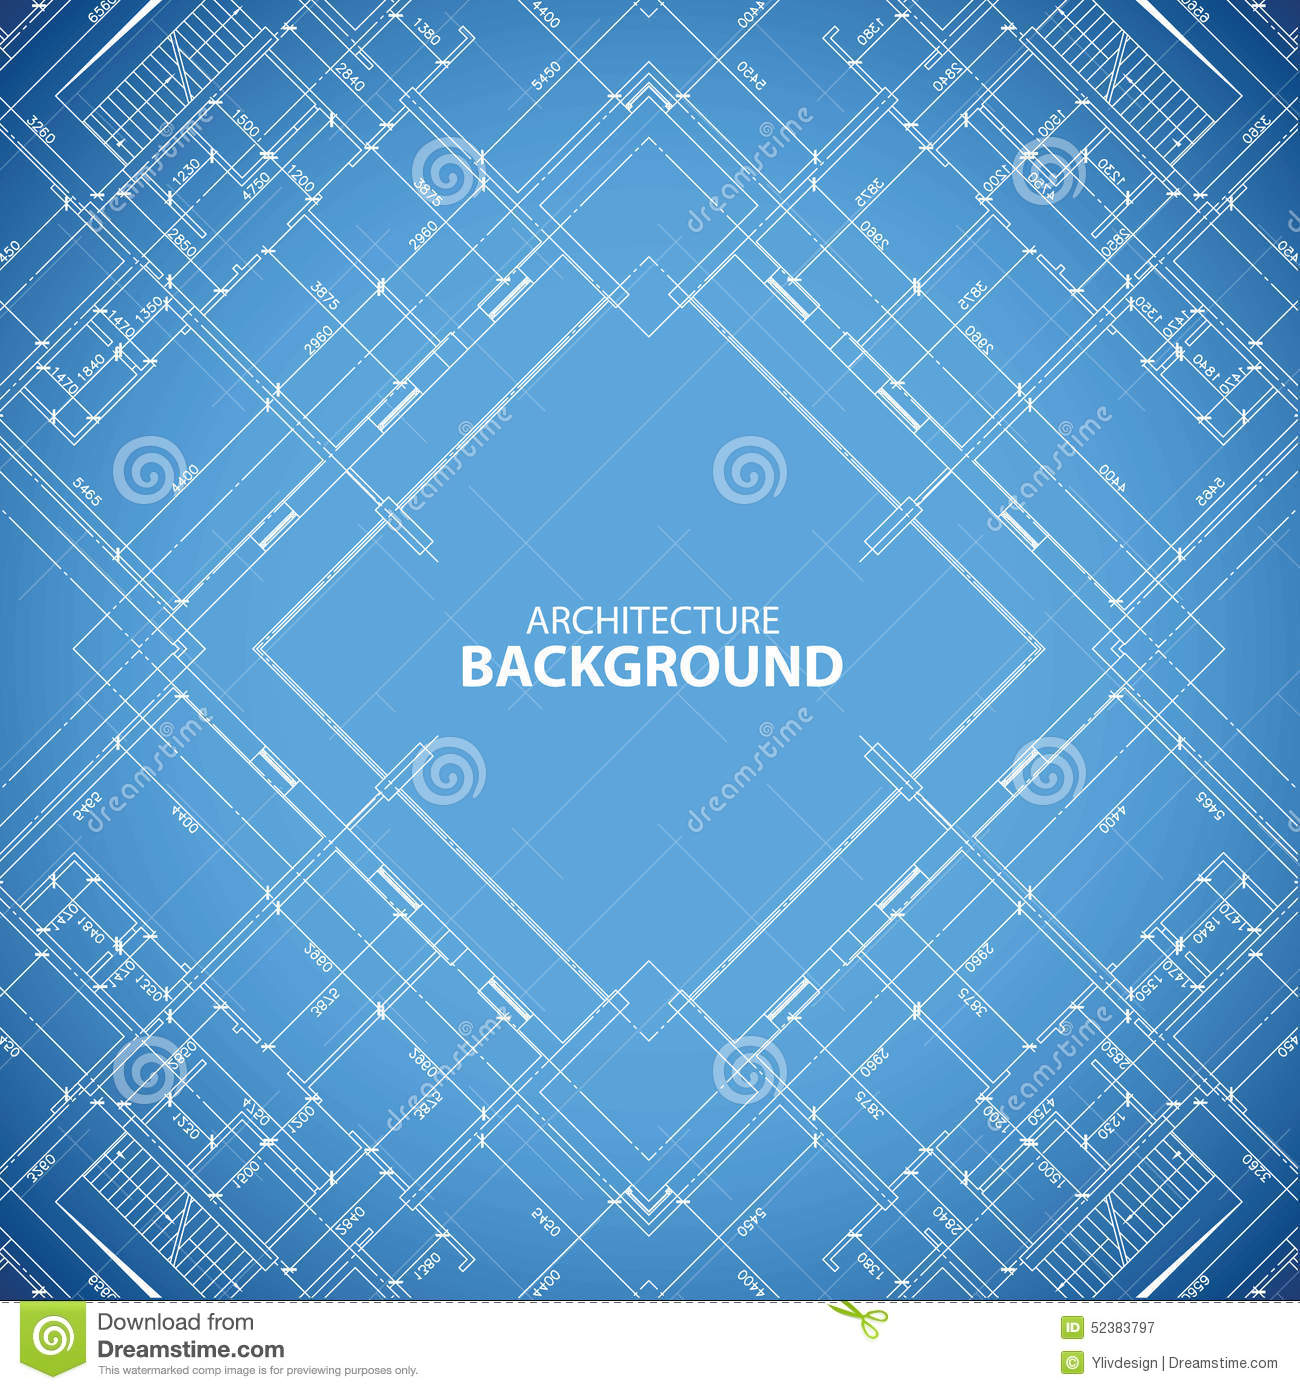 Blueprint building structure background stock vector illustration blueprint building structure background malvernweather